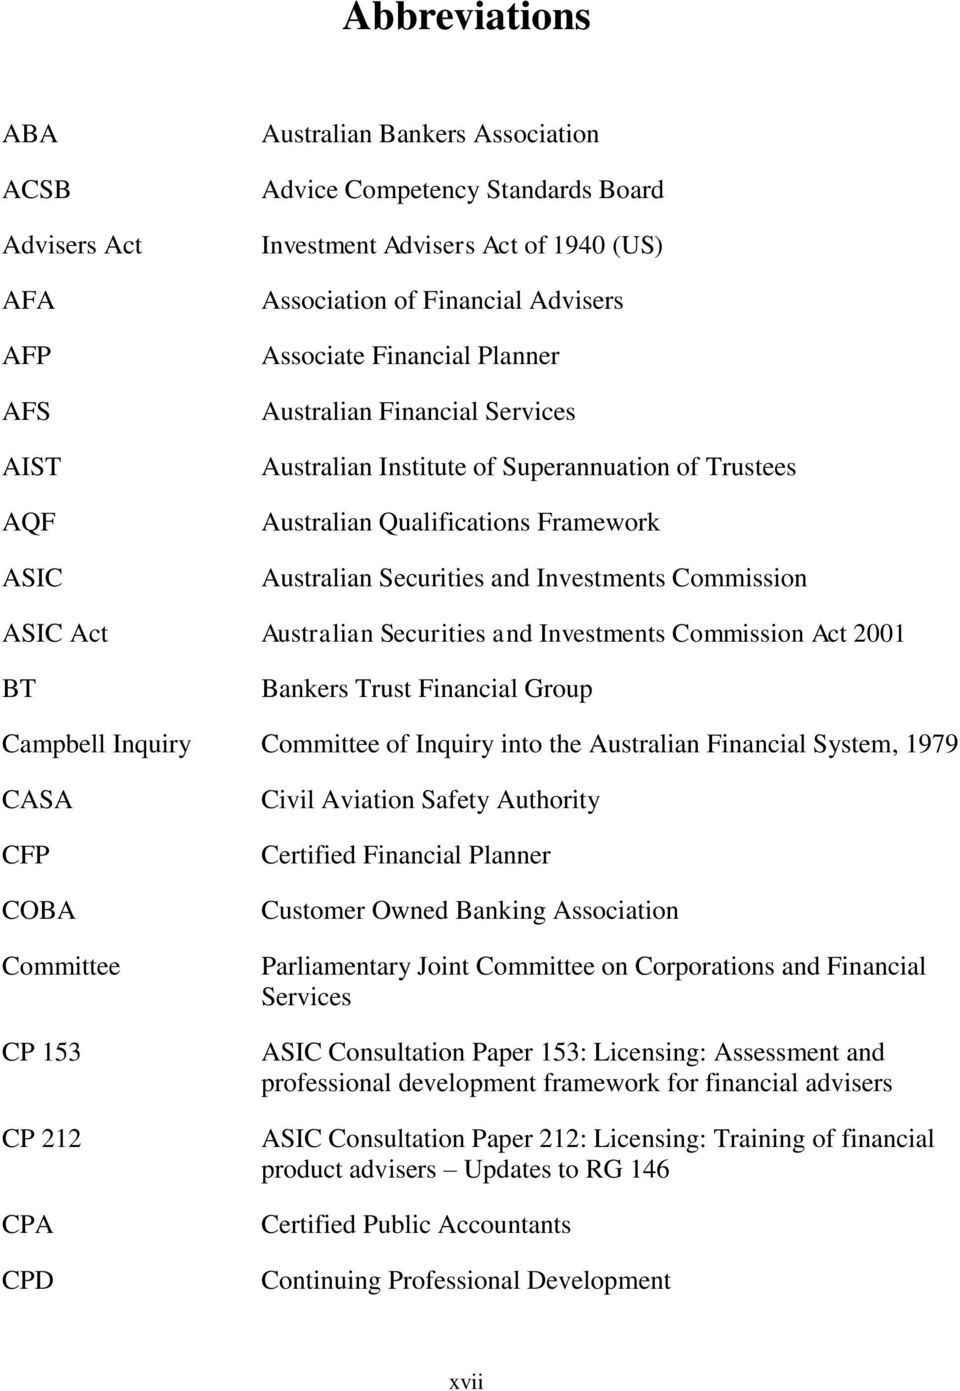 Act Australian Securities and Investments Commission Act 2001 BT Bankers Trust Financial Group Campbell Inquiry Committee of Inquiry into the Australian Financial System, 1979 CASA CFP COBA Committee